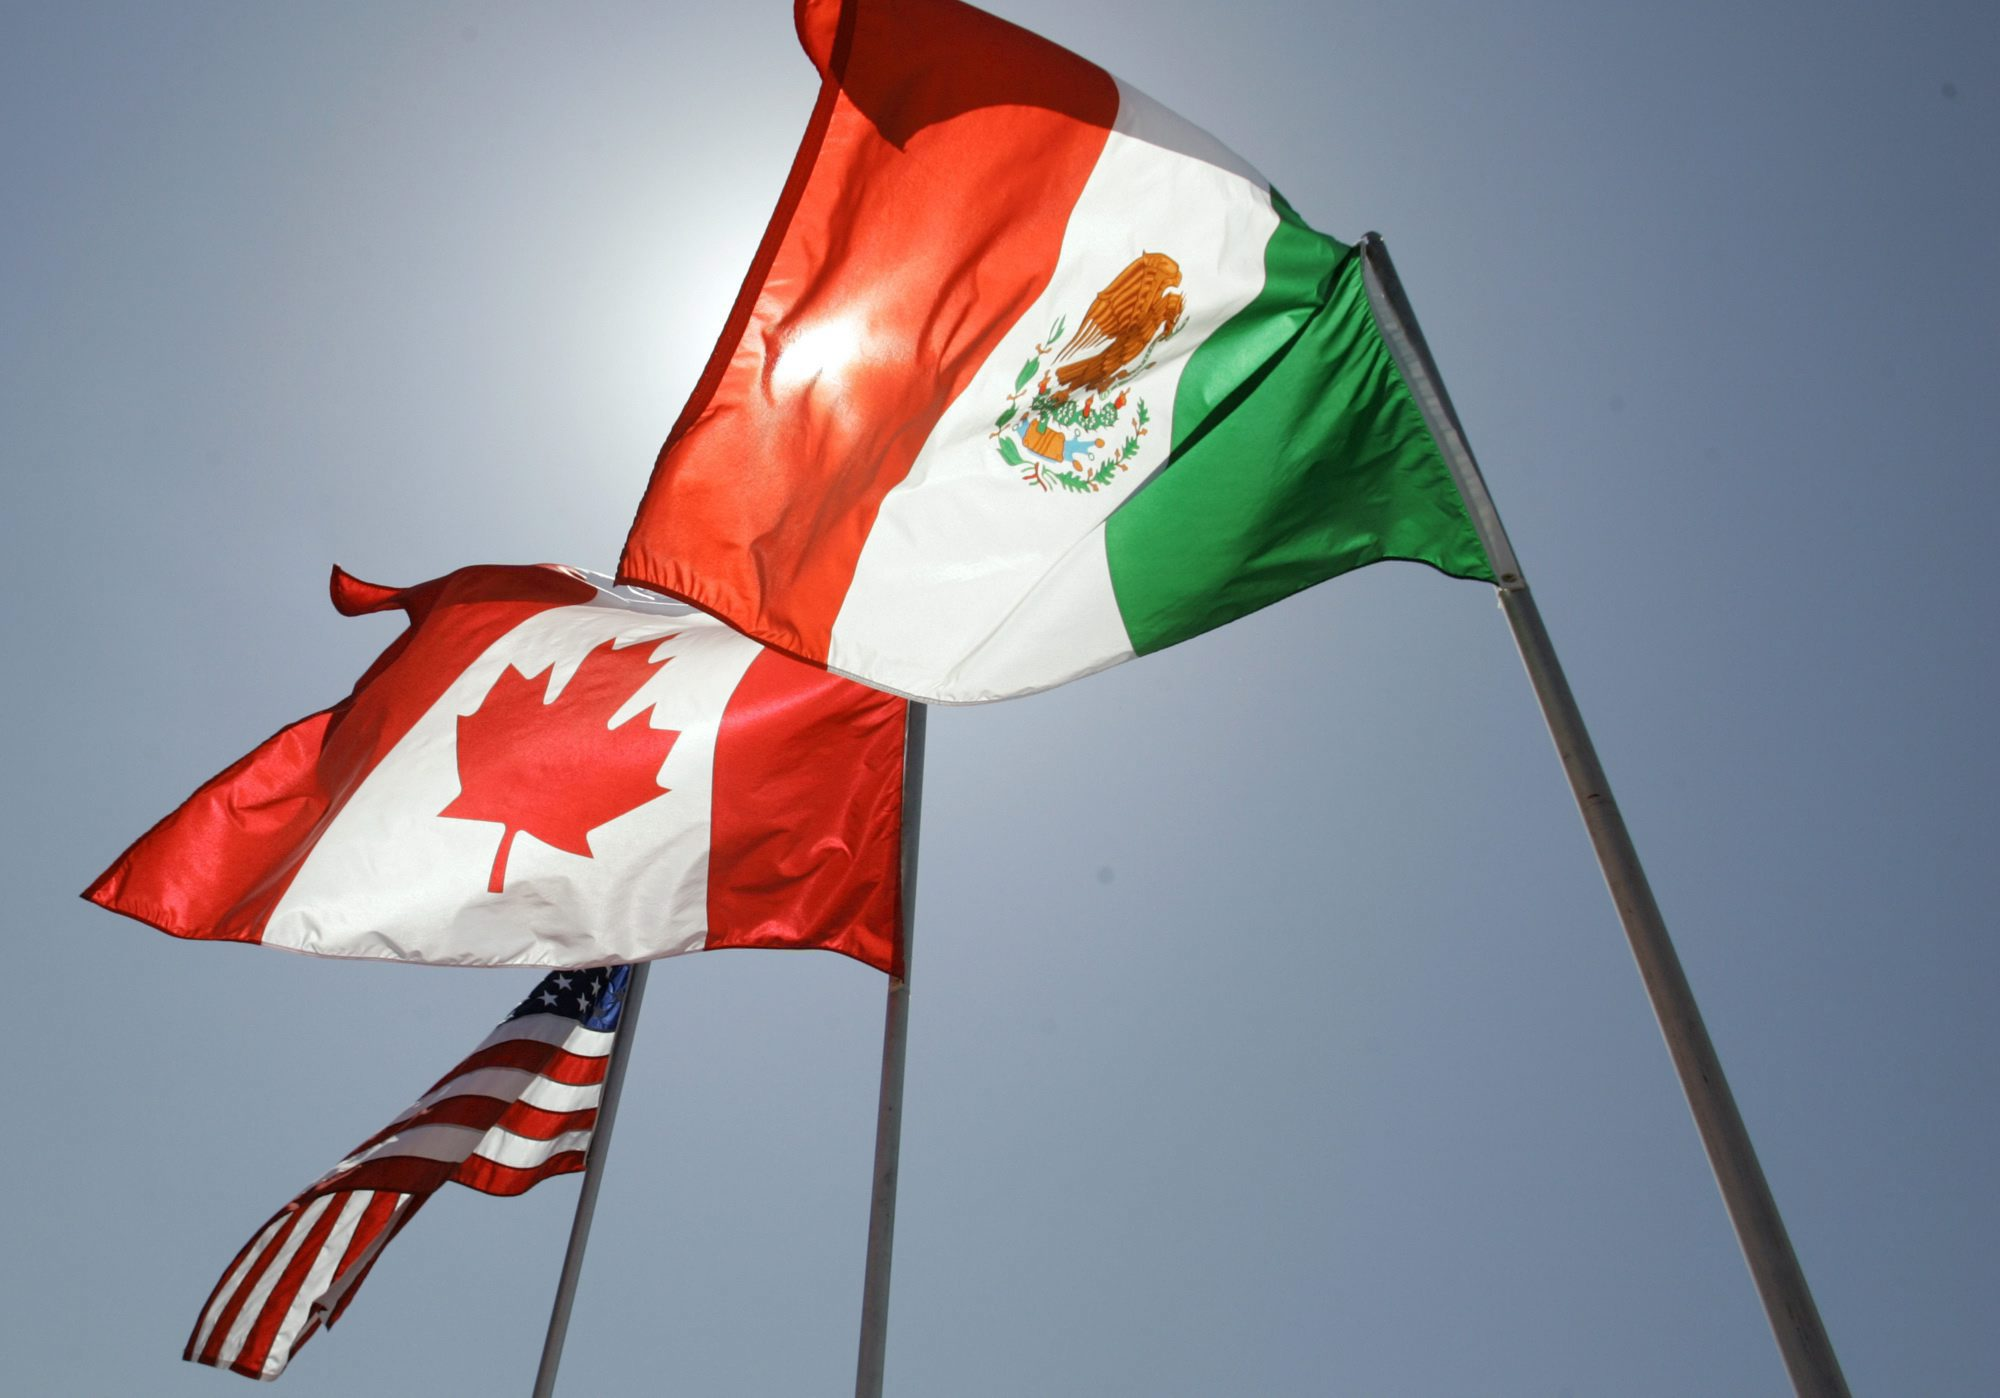 NAFTA negotiations: Canada and Trump administration at impasse